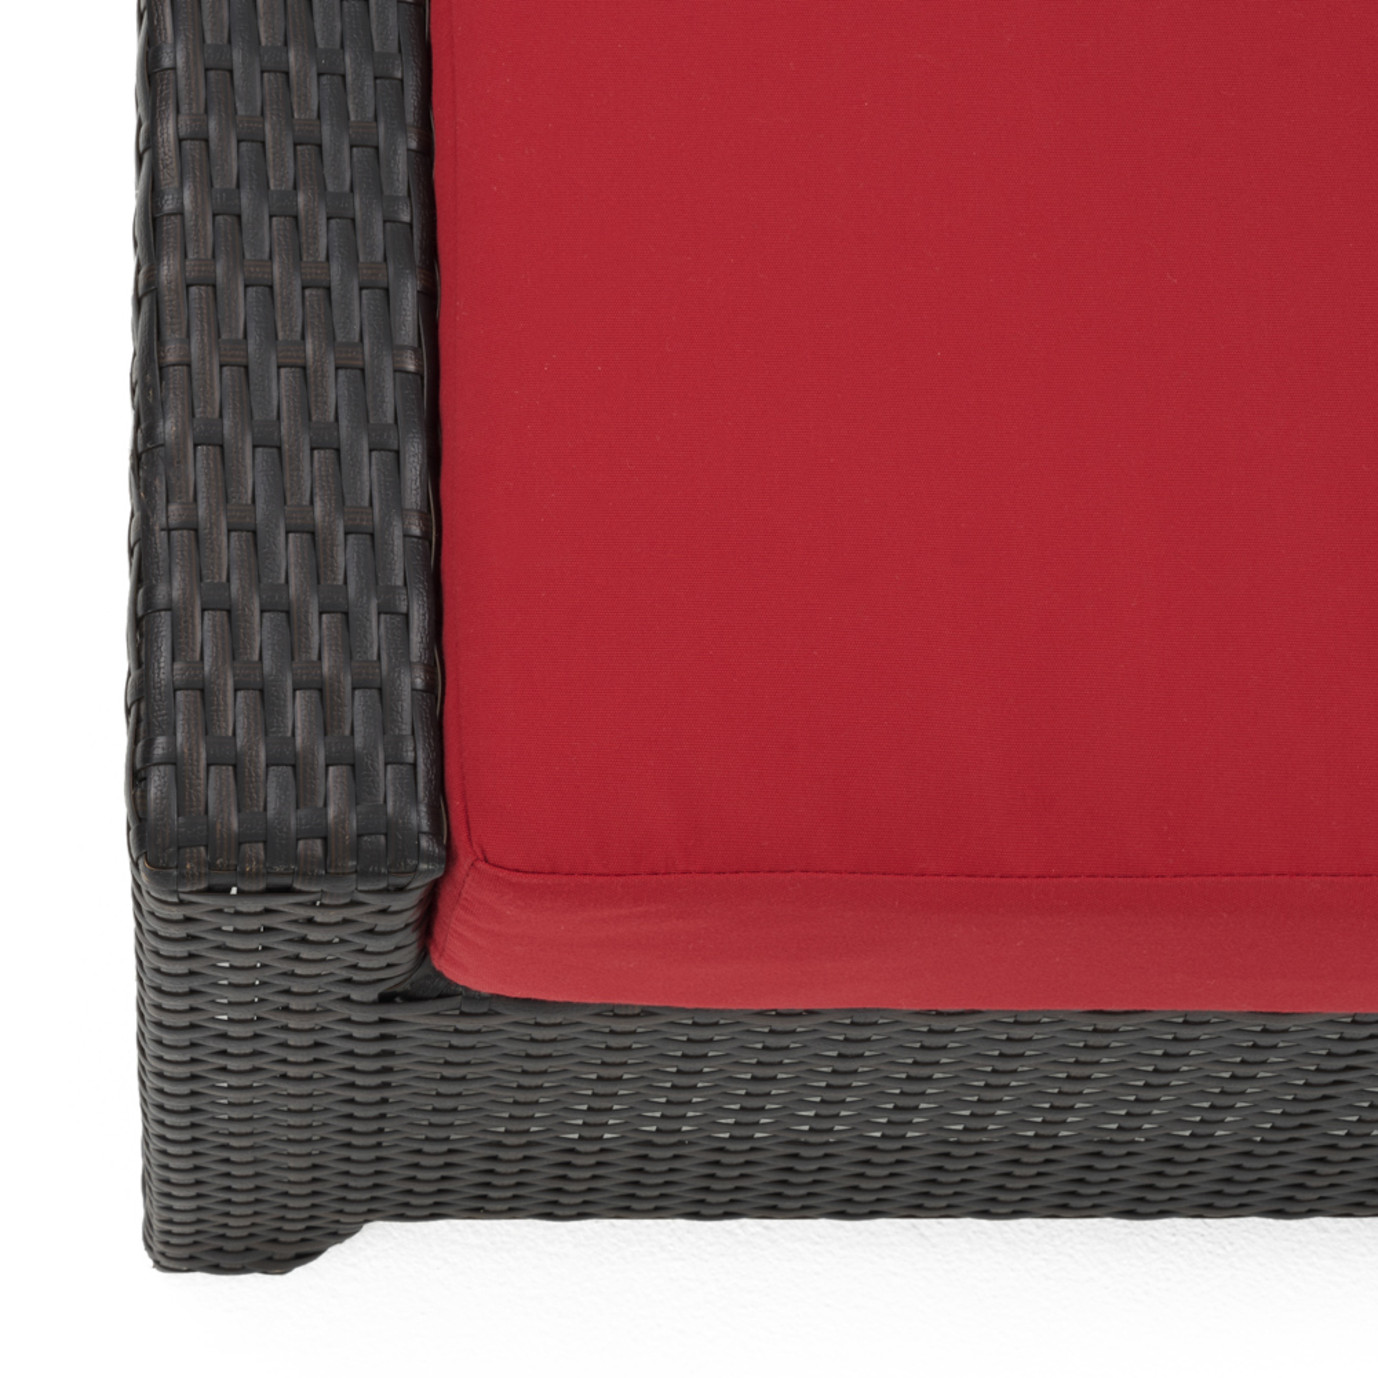 Deco™ Club Ottomans - Sunset Red